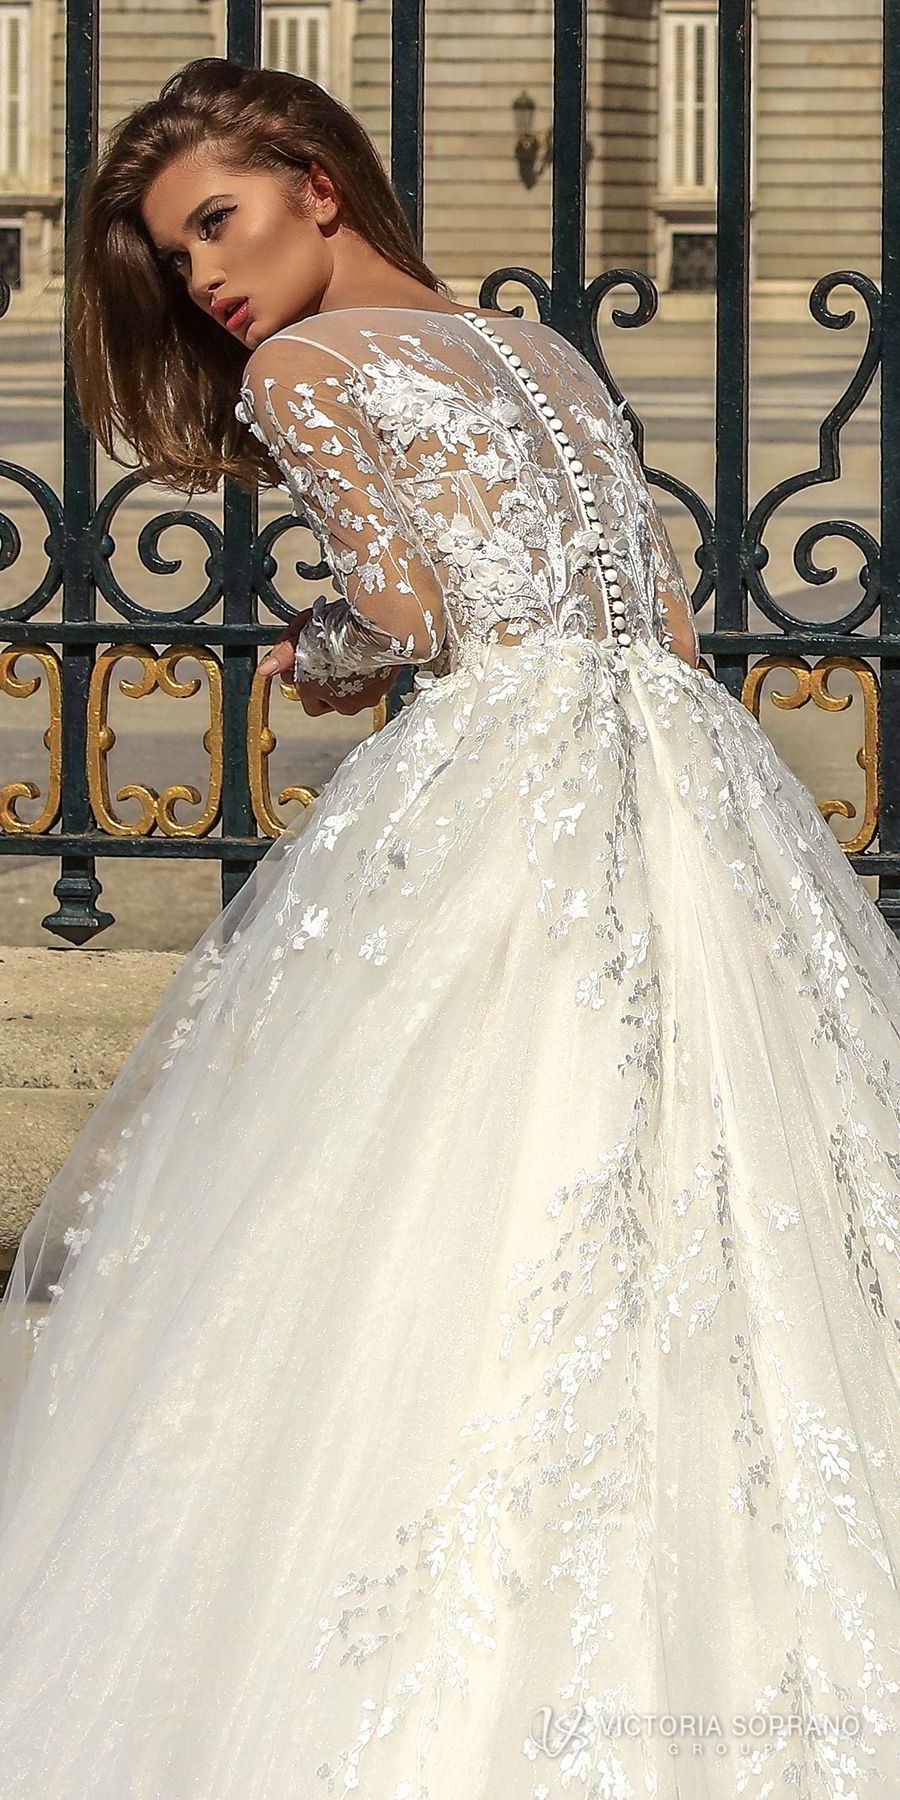 victoria soprano 2018 bridal long sleeves illusion jewel sweetheart neckline heavily embellished bodice princess ball gown a  line wedding dress sheer lace back chapel train (felicity) zbv